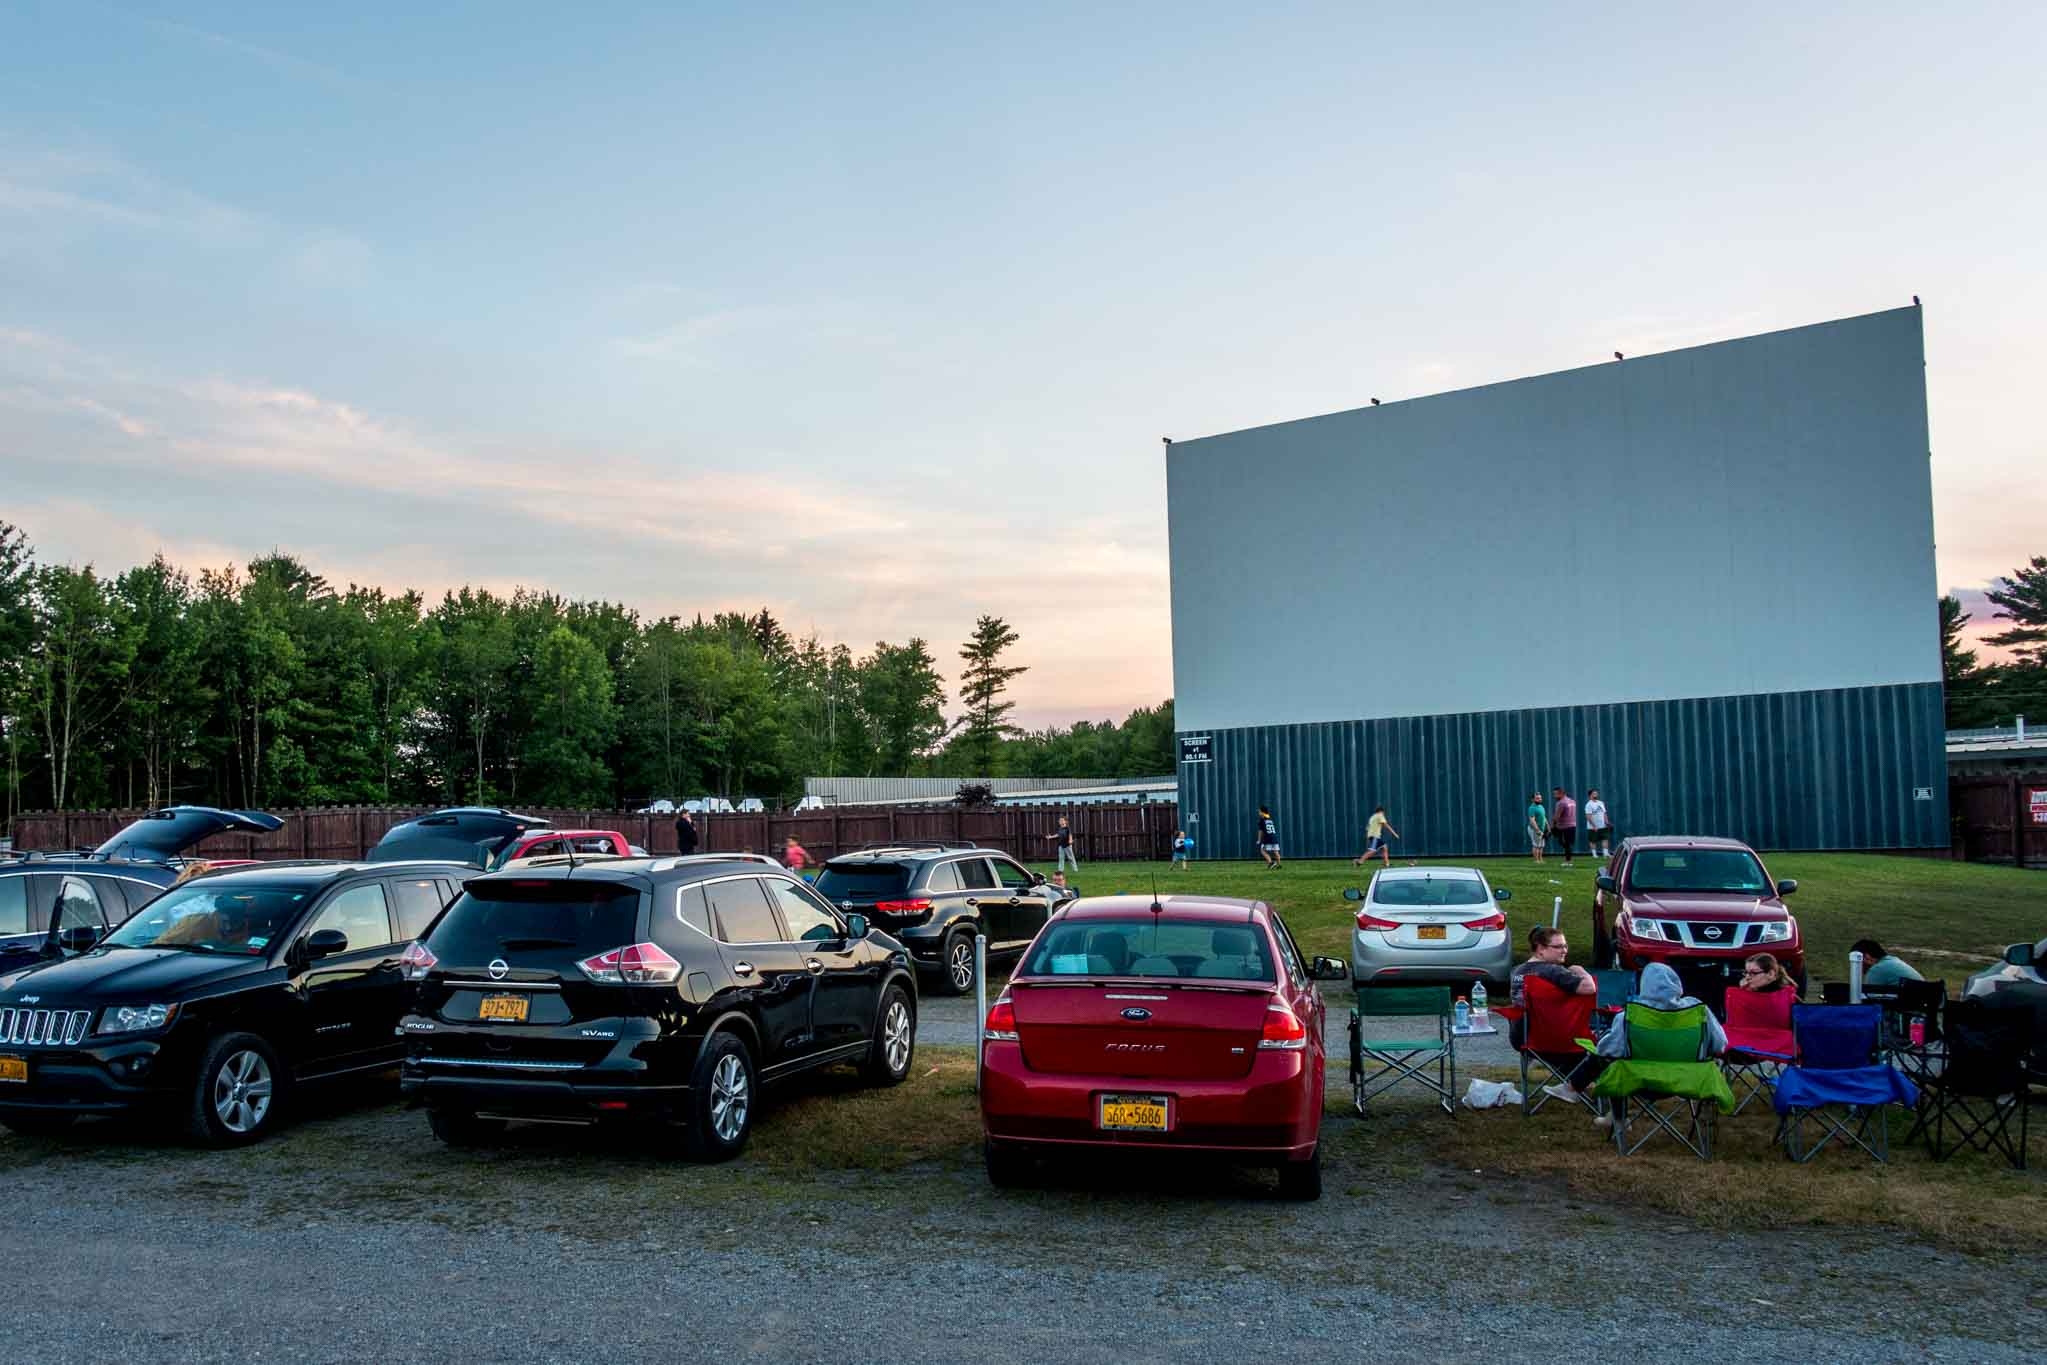 Cars waiting for a drive-in movie